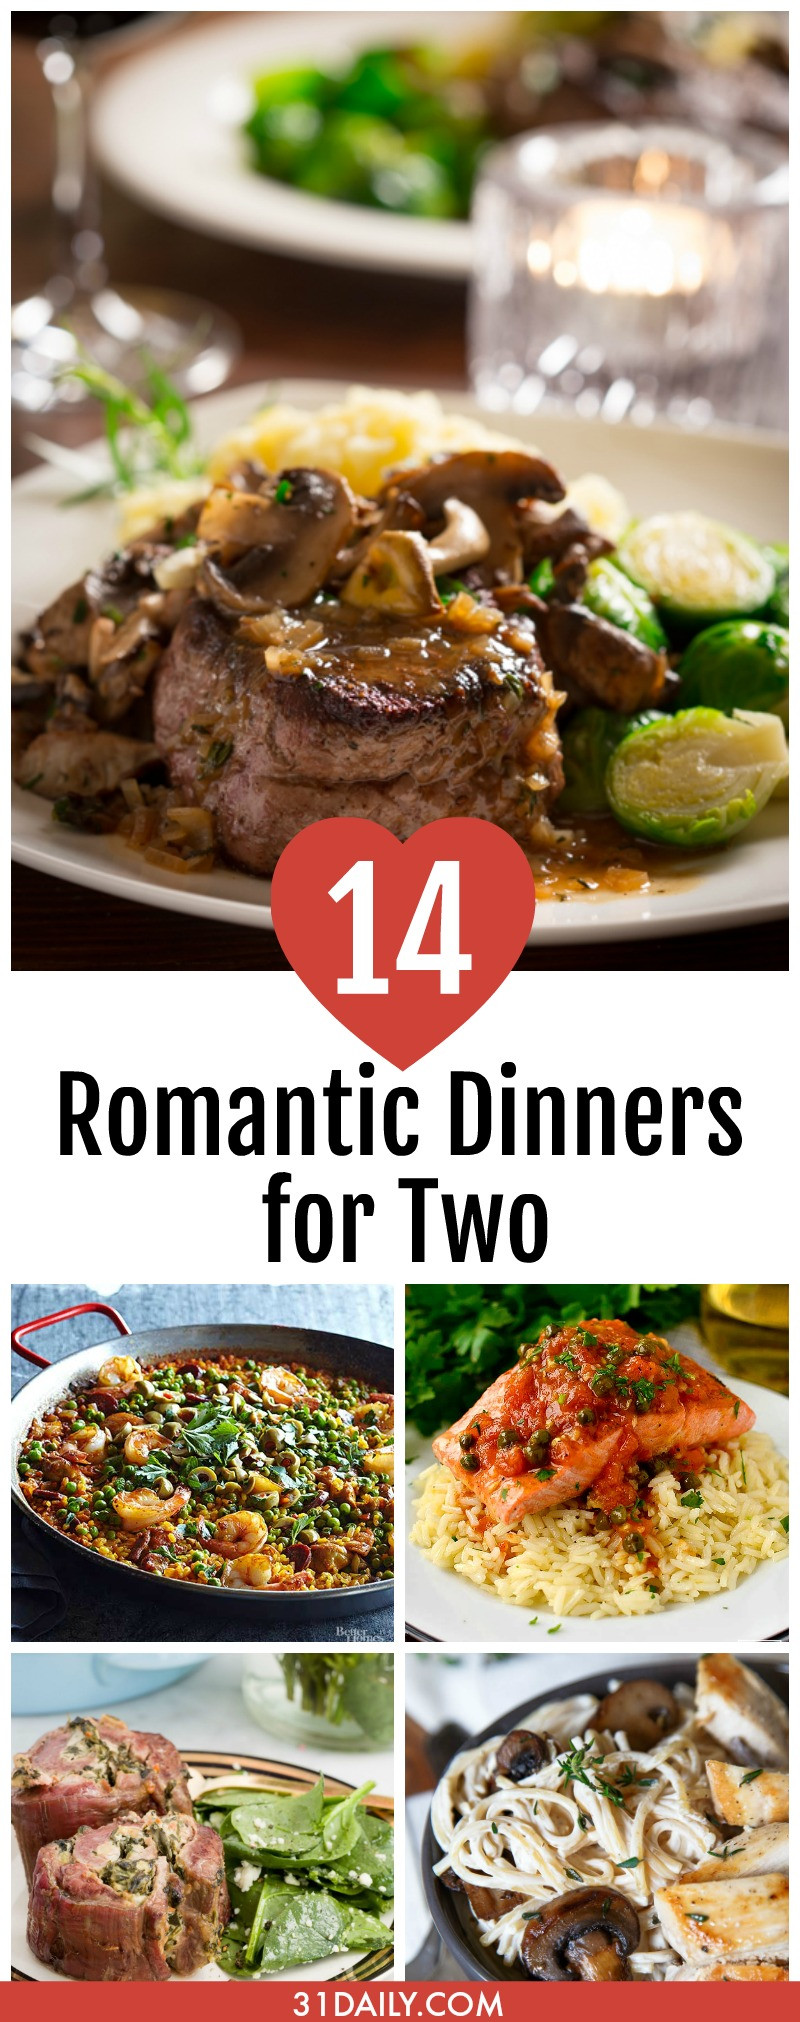 Romantic Dinners Recipes For Two  14 Romantic Dinner Recipes for Two 31 Daily